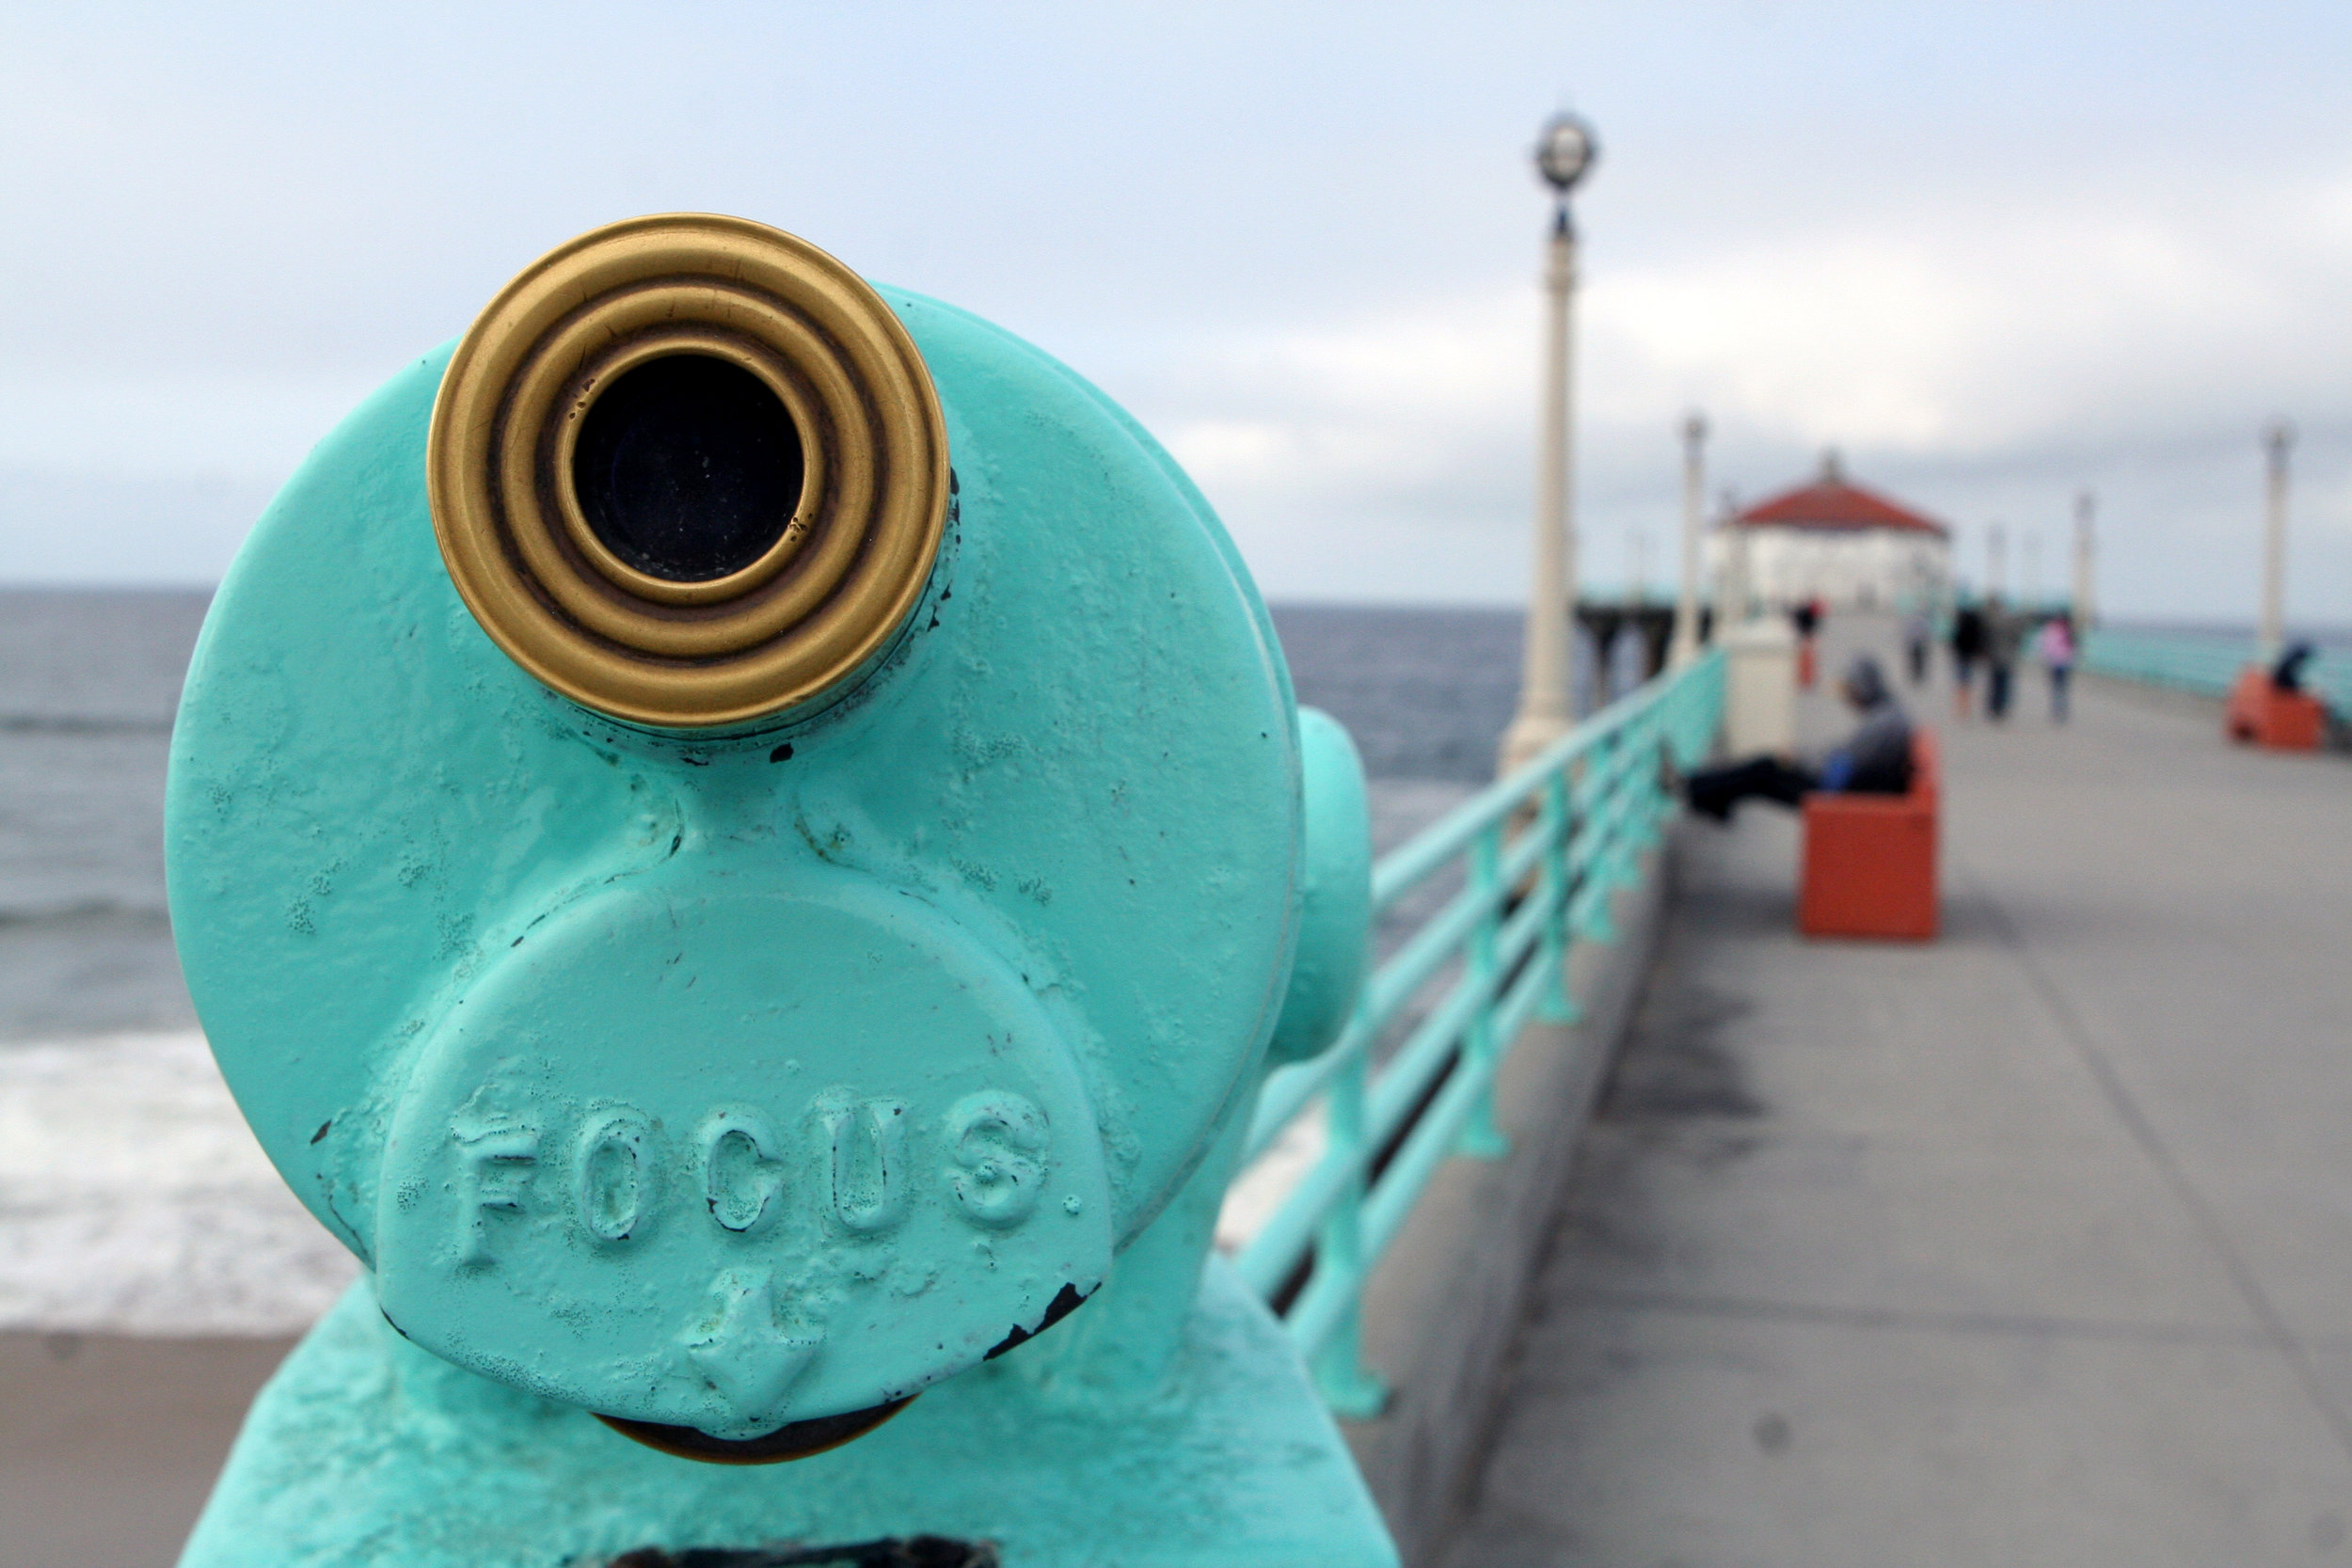 Focus. Manhattan Beach Pier. April, 2008.